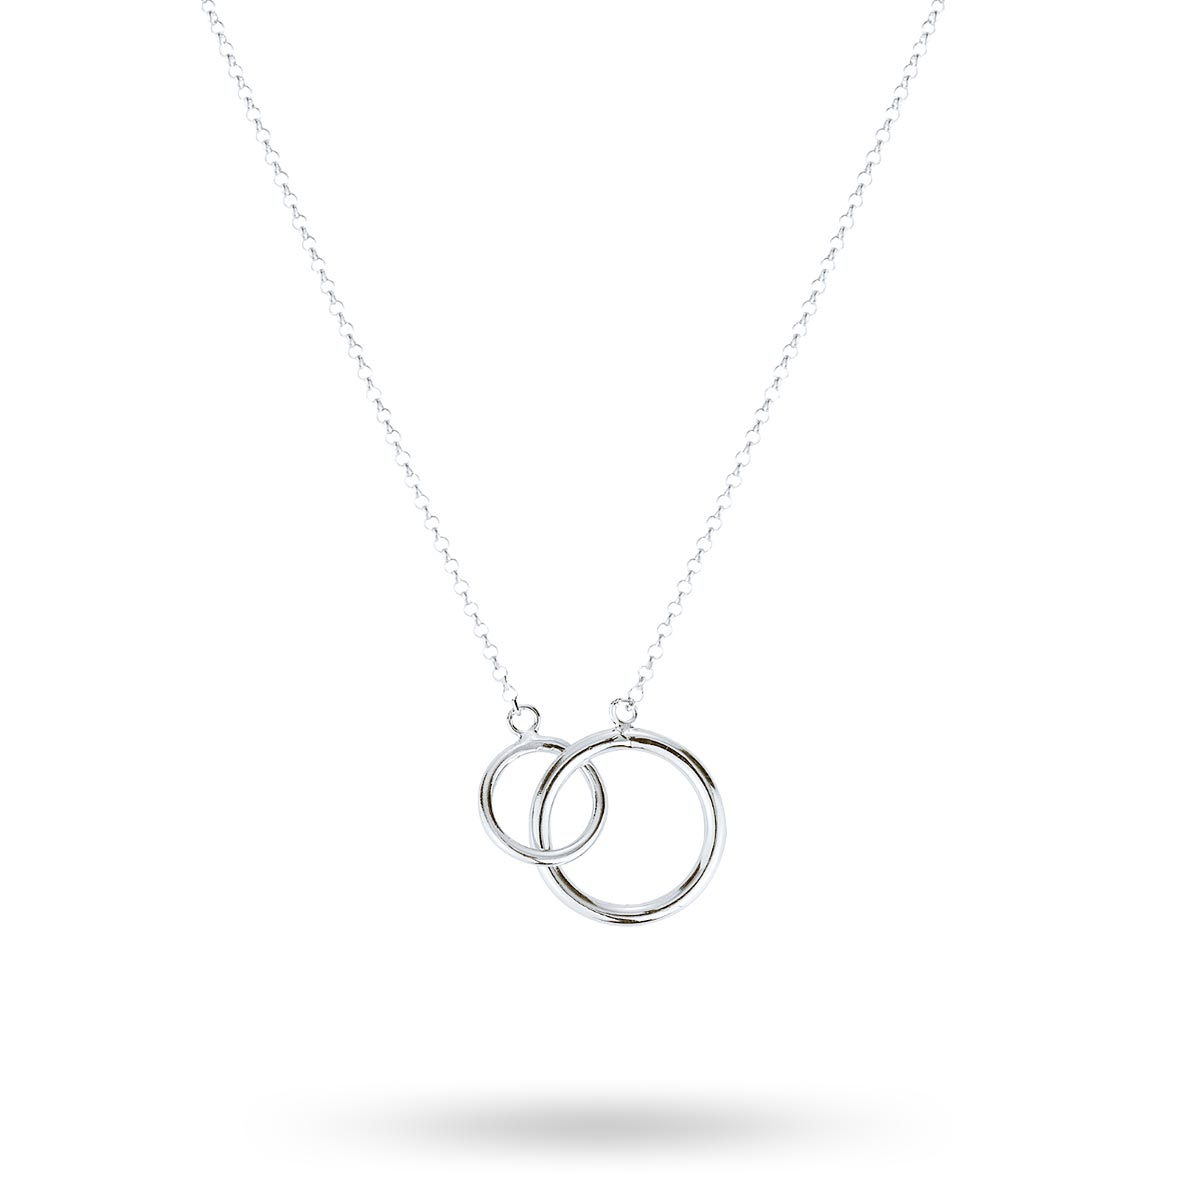 sophiebysophie-mini-circle-halsband-silver-1